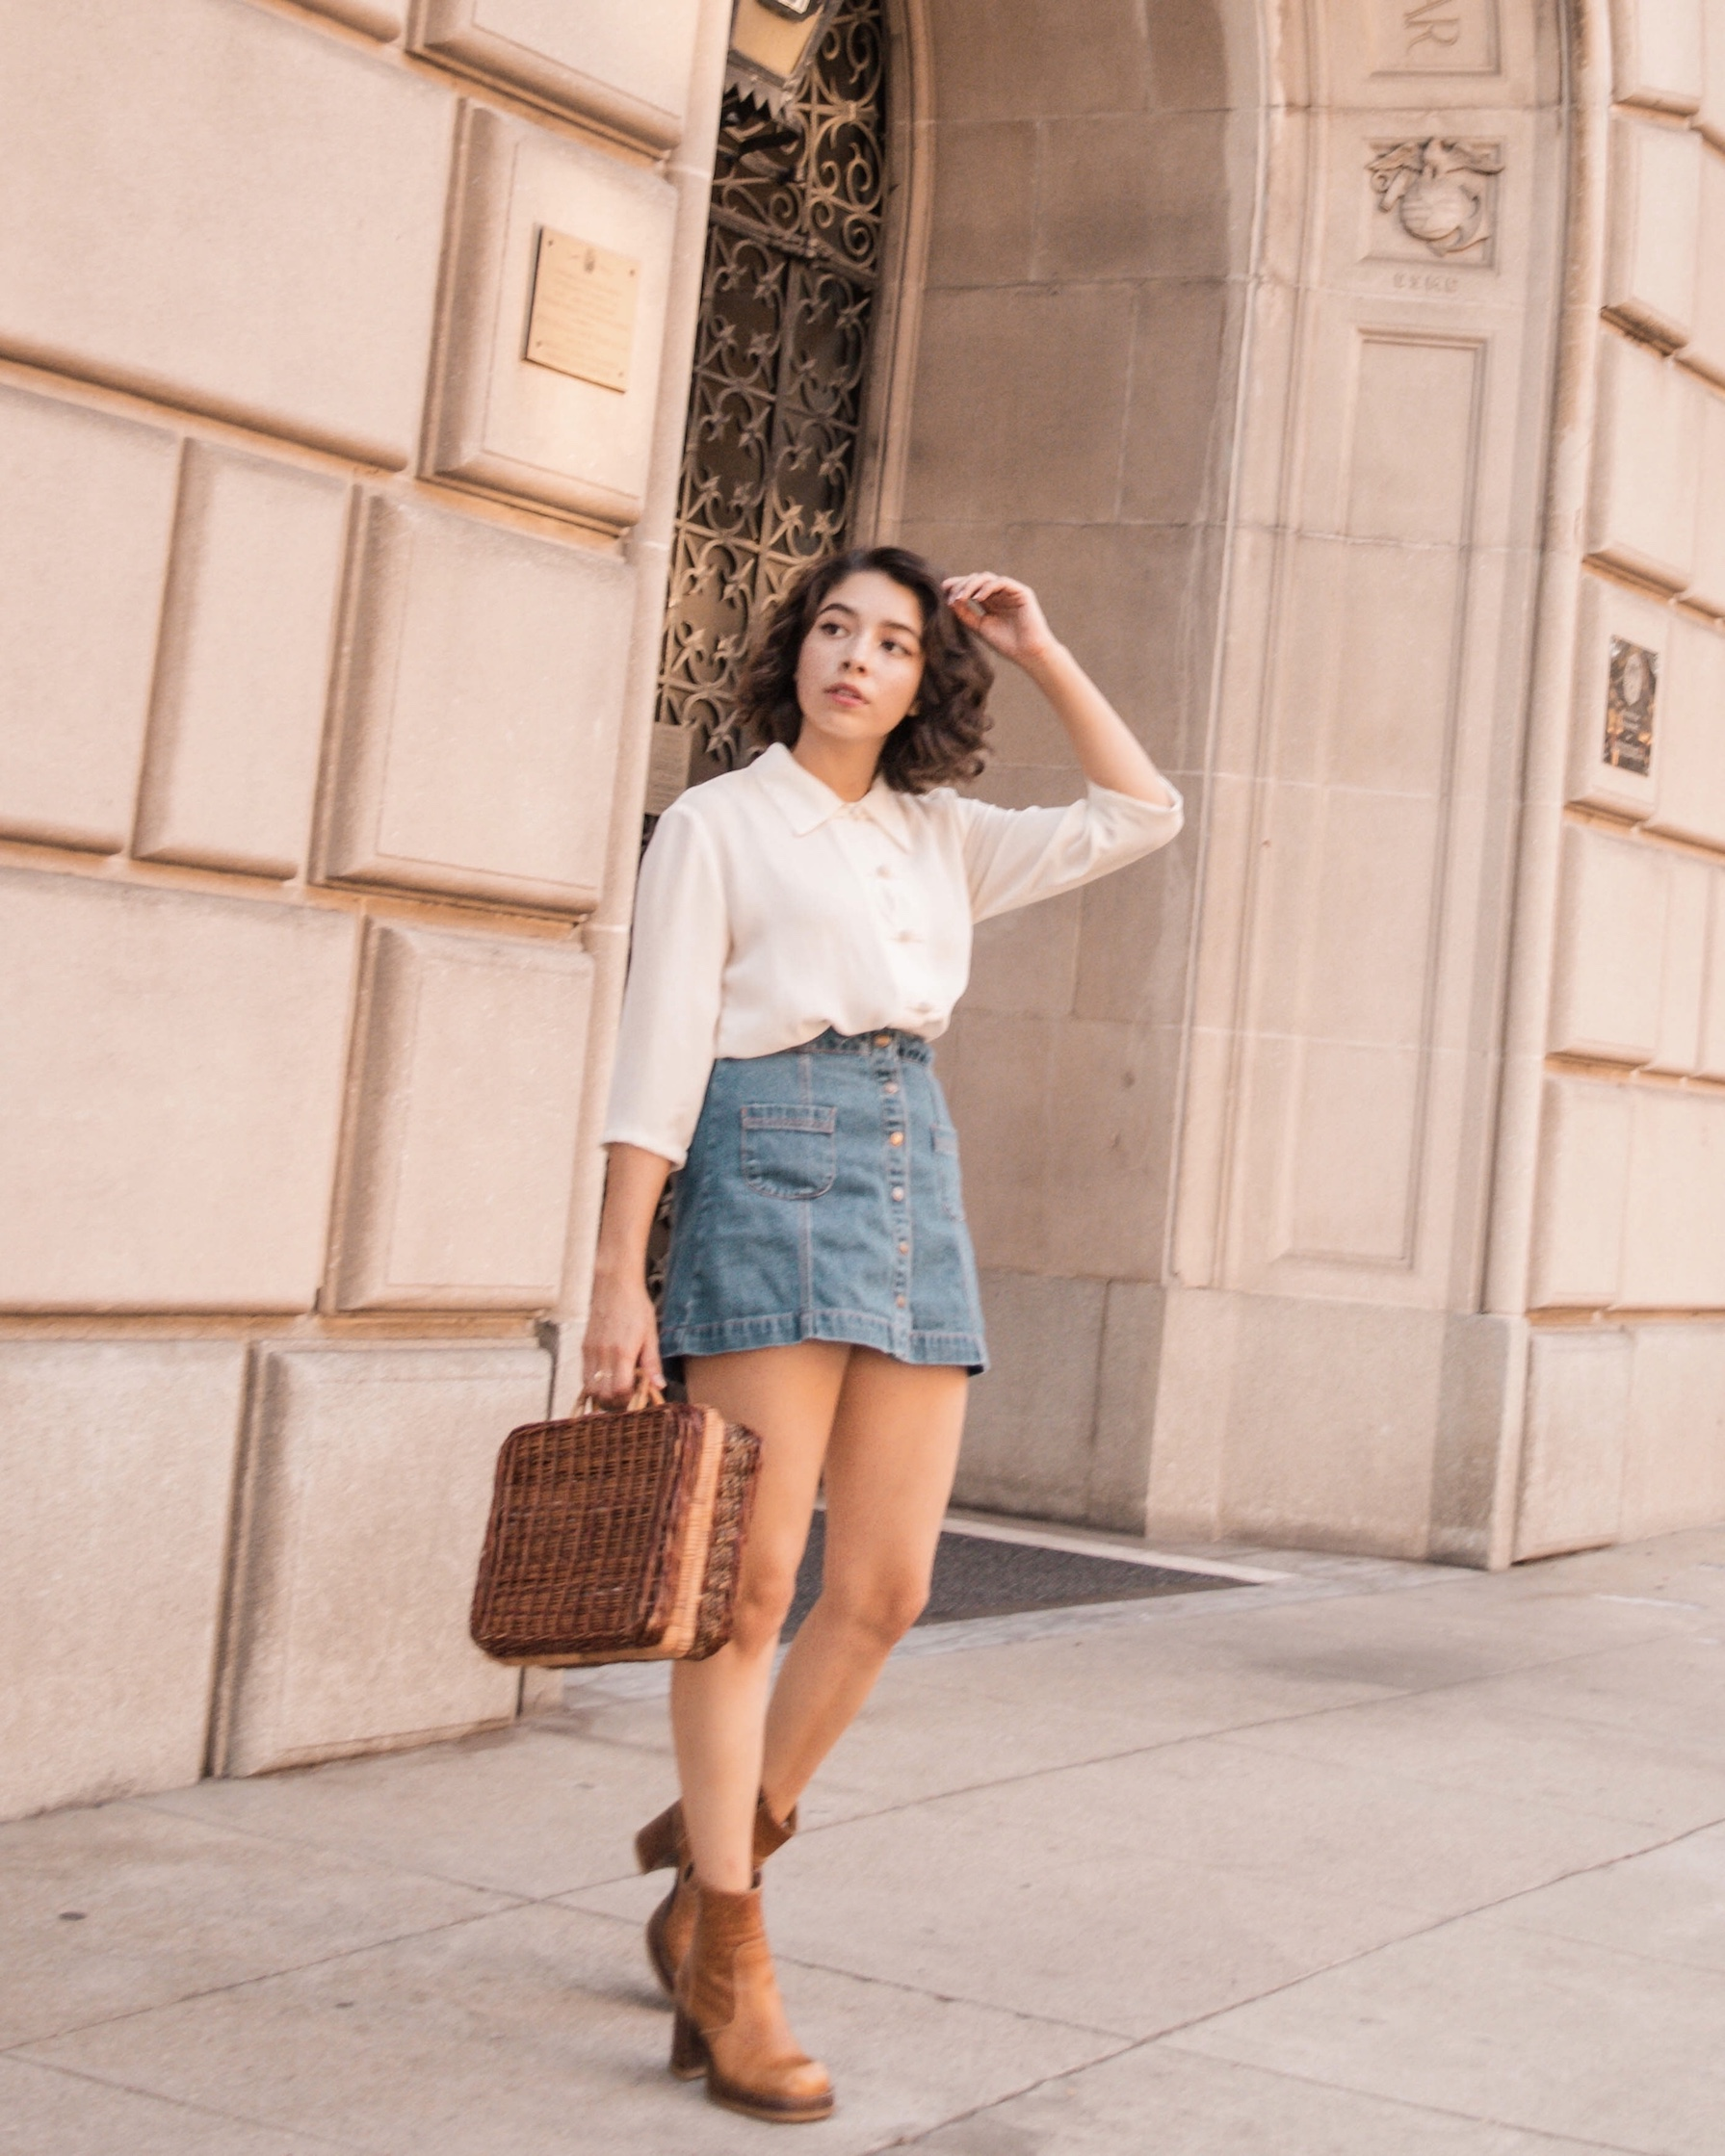 Denim mini skirt with white button down // A Week Of Self-Expressive Outfits With Aja Duran From Aja With Love on The Good Trade